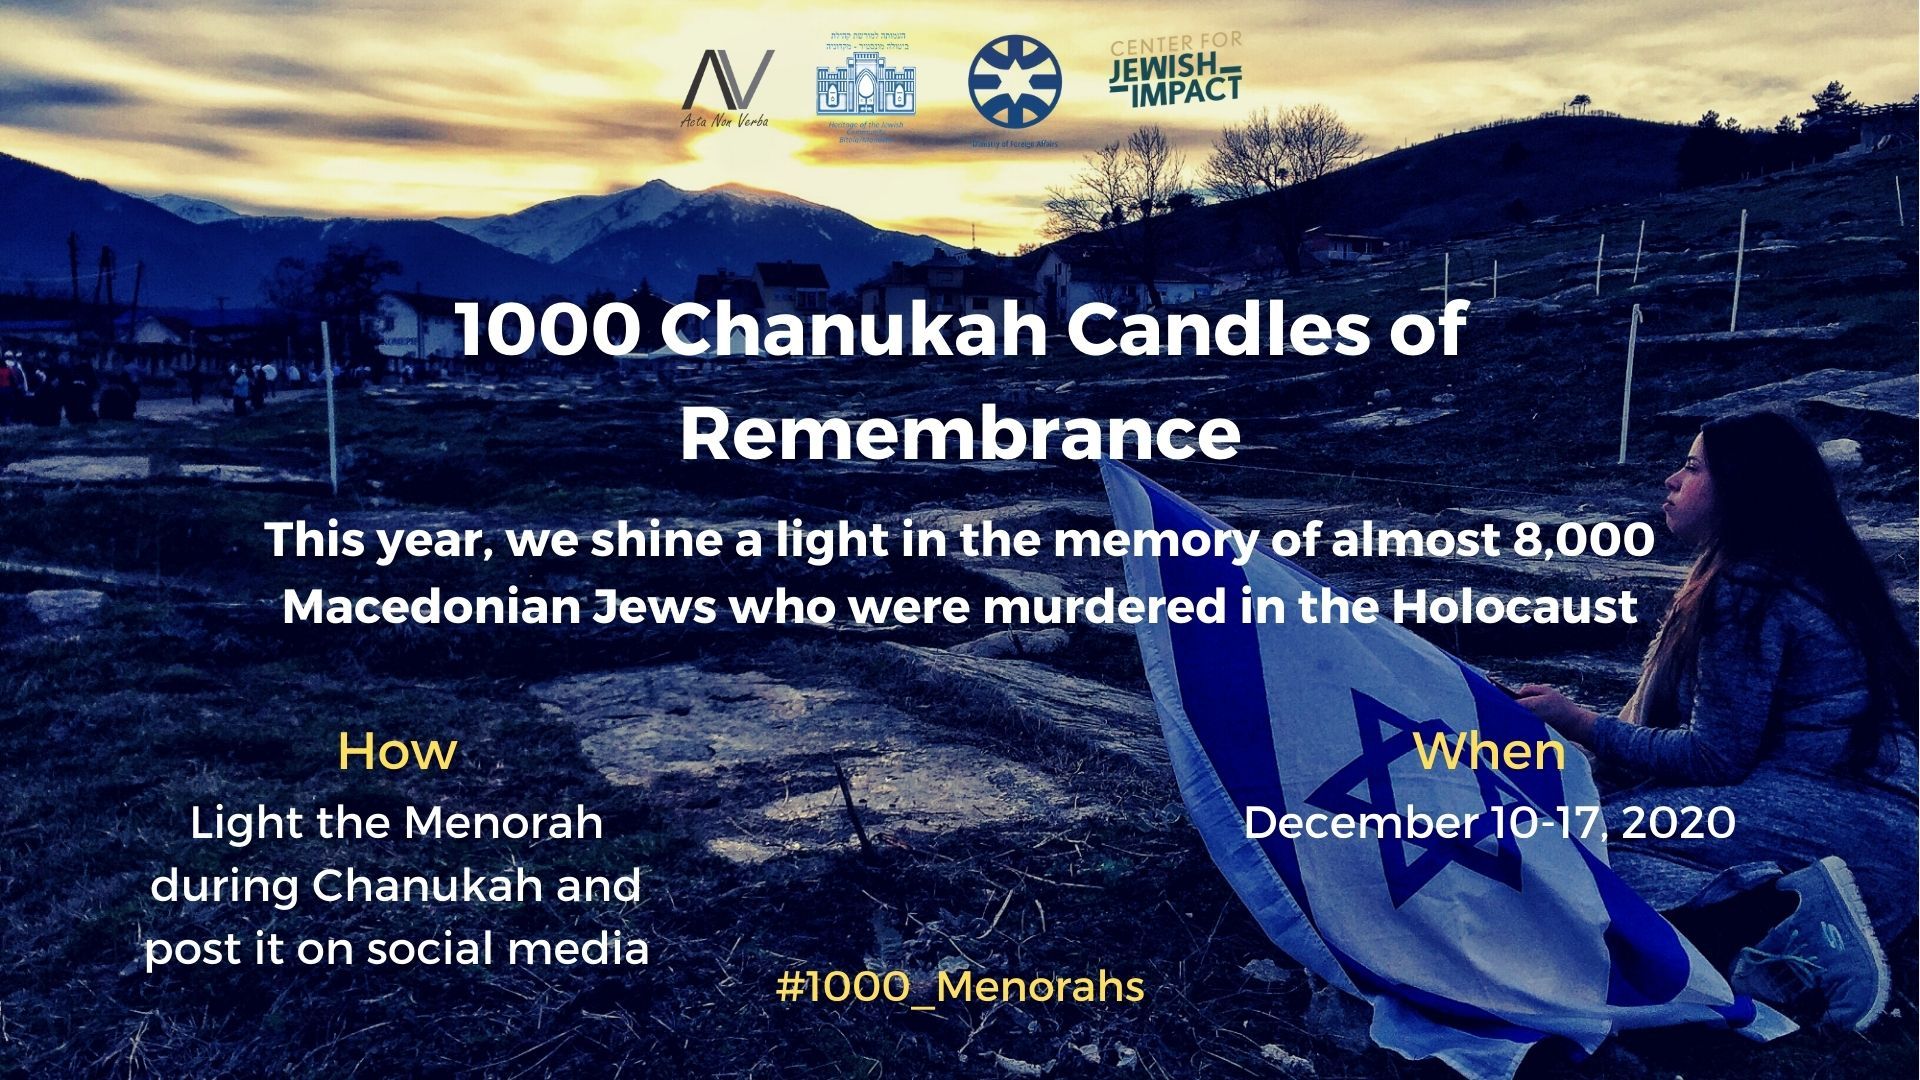 1000 Chanukah Candles of Remembrance